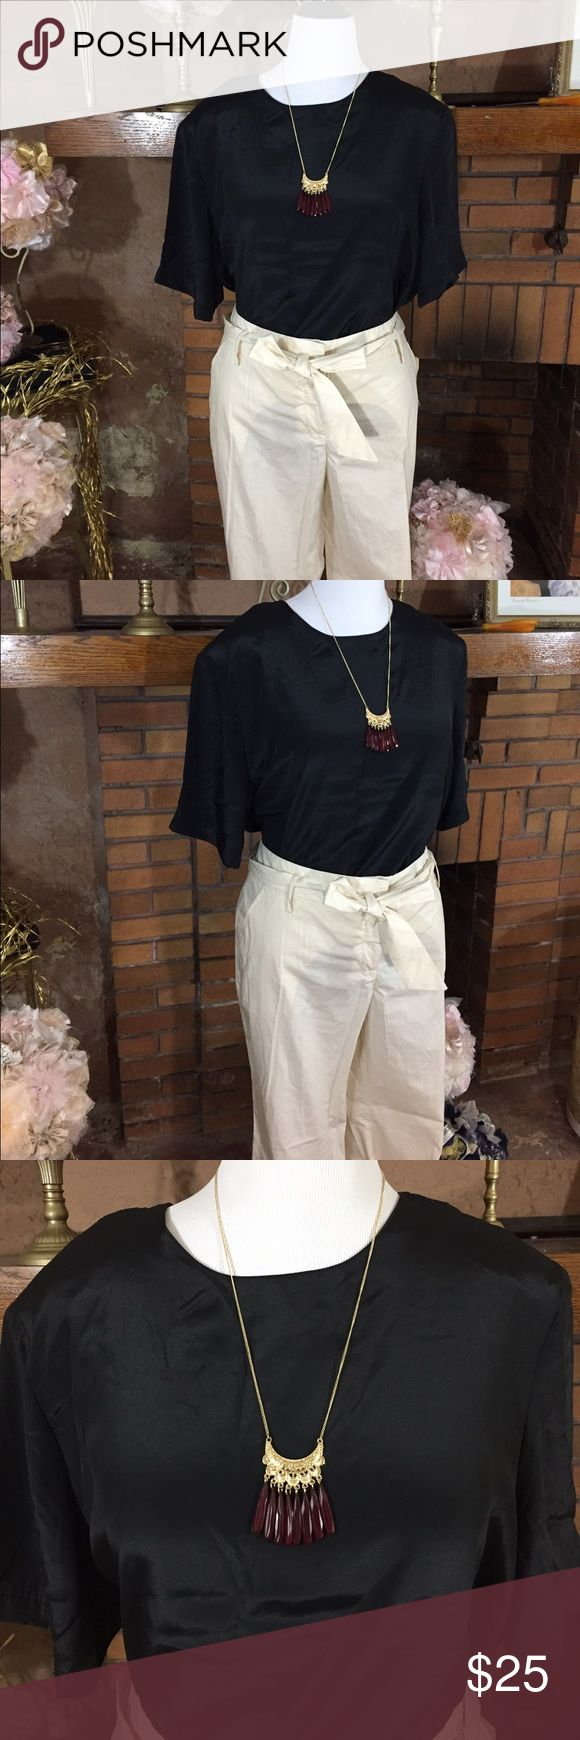 Canyon River Blues pants and black shirt Canyon River Blues cotton light tan pants sz 18. New with tags. Black shiny shirt with shoulder pads. 100% Polyester. Sz 20. Previously owned. Gold tone necklace with red beads new with tags. Please check out all pictures for best description of the items.  Ask me any questions and happy shopping! Canyon River Blues  Pants Trousers